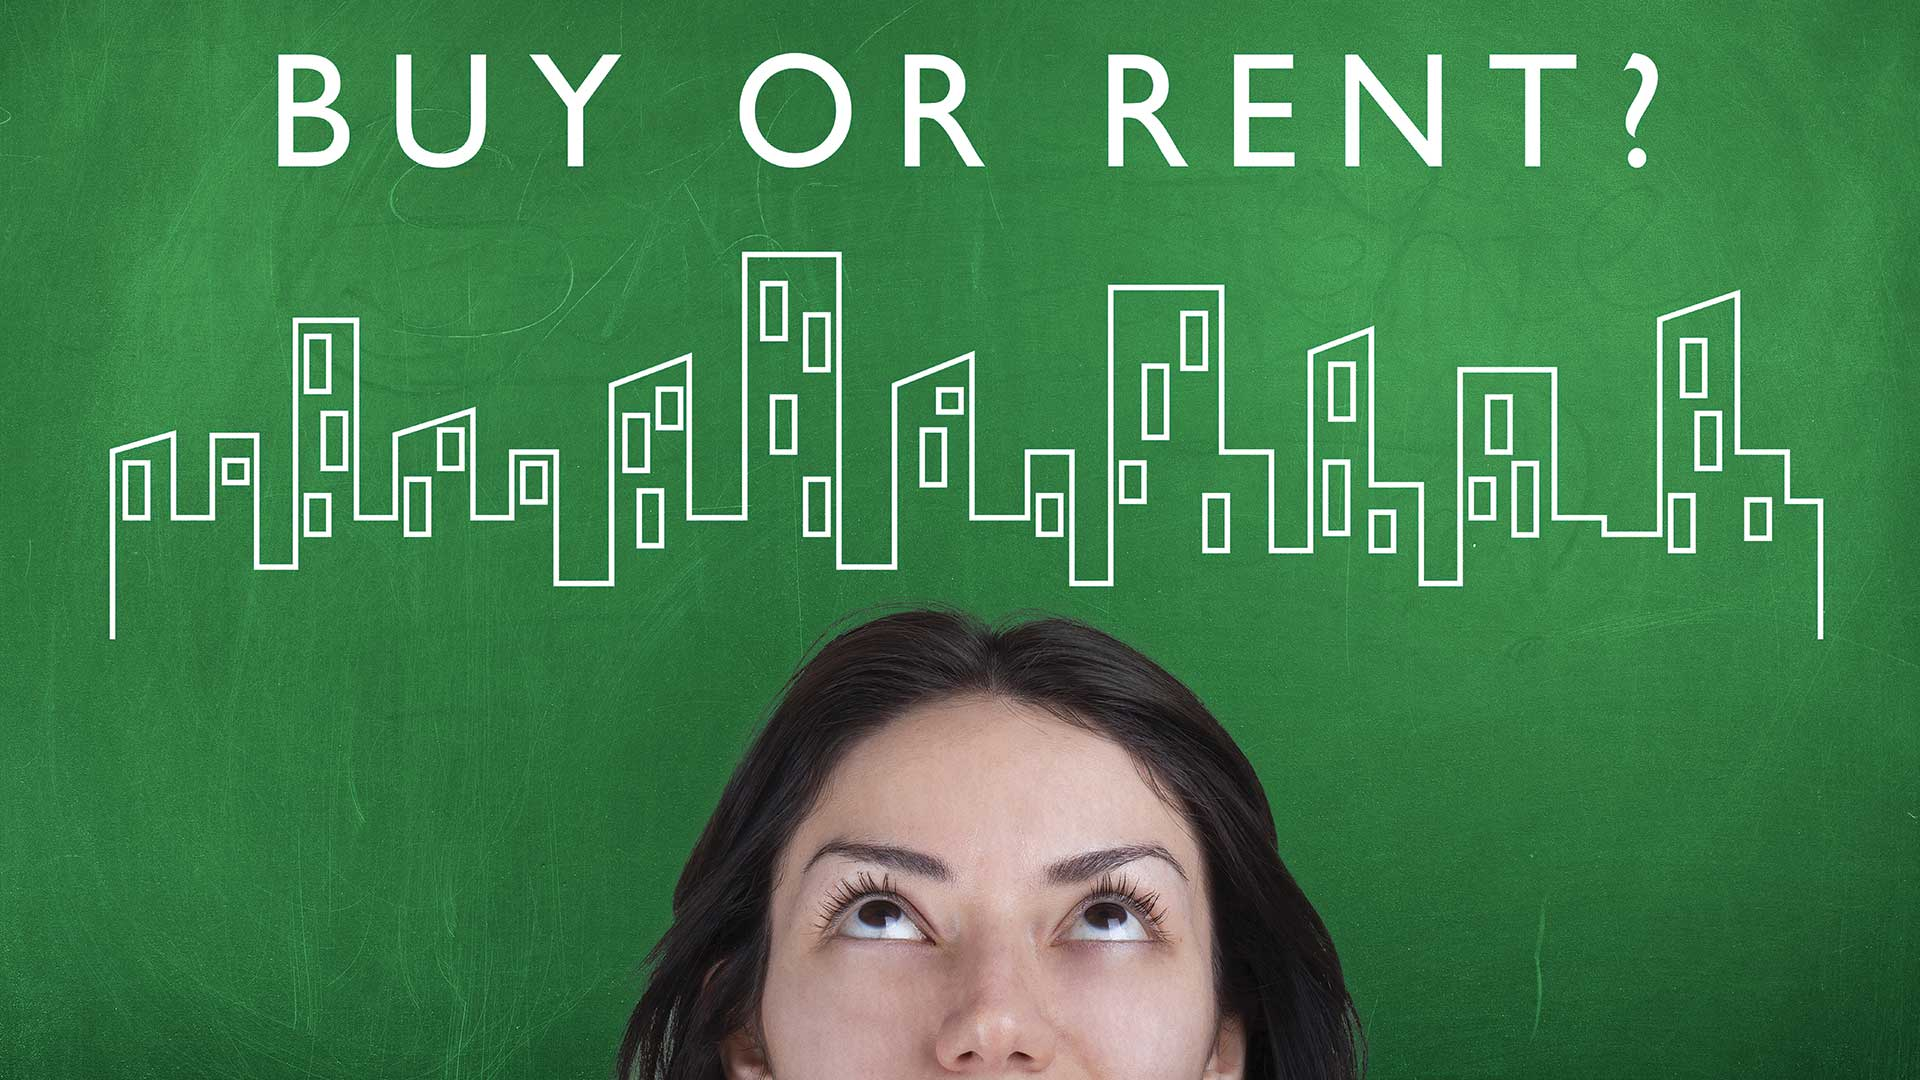 Buy or Rent written on a chalk board